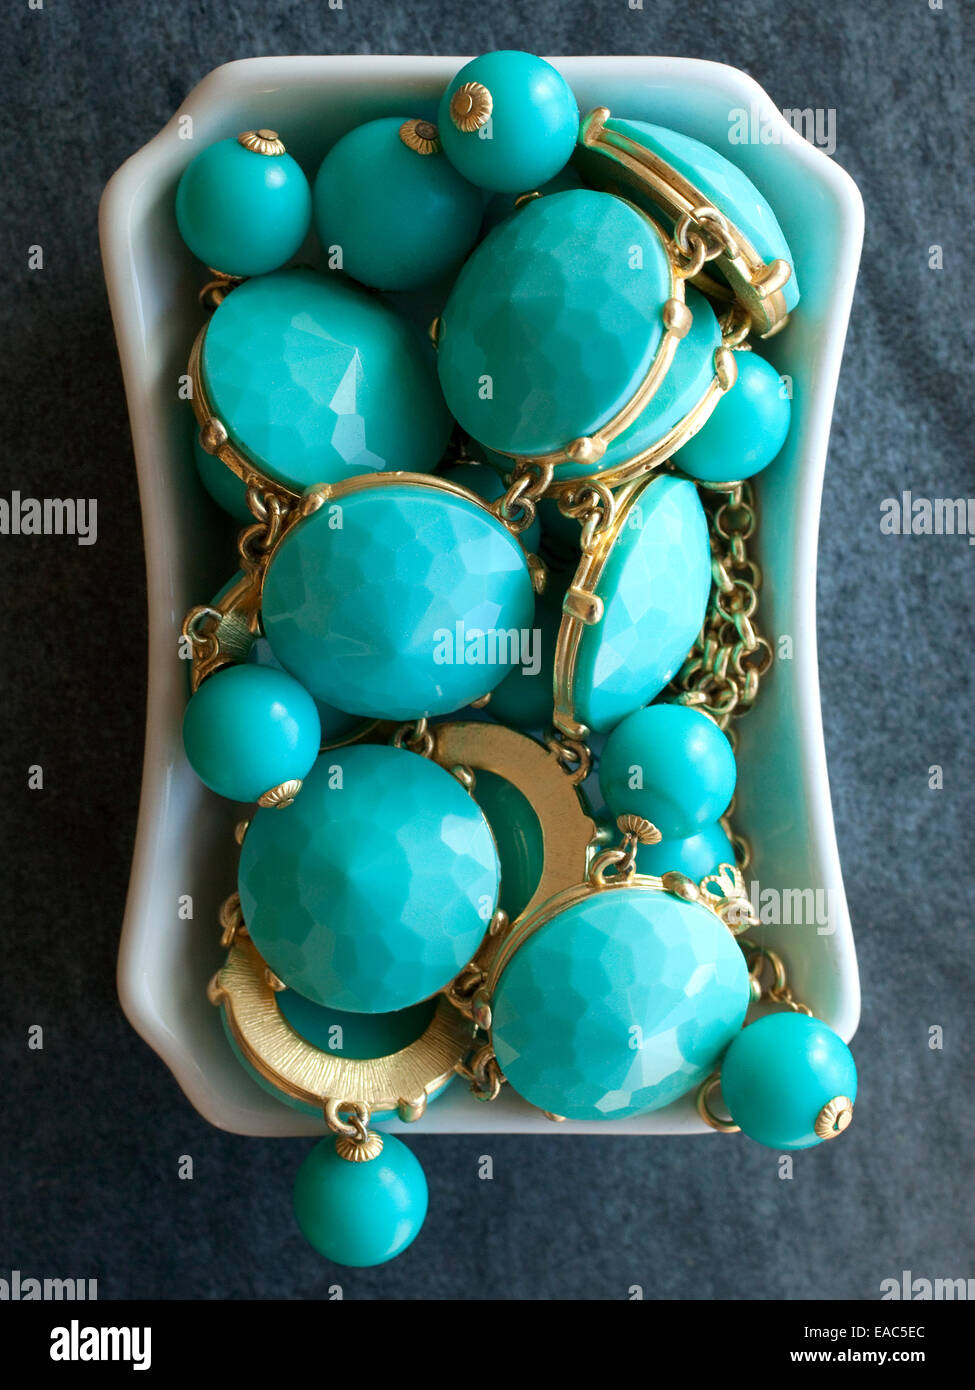 Turquoise Jewelry in dish - Stock Image